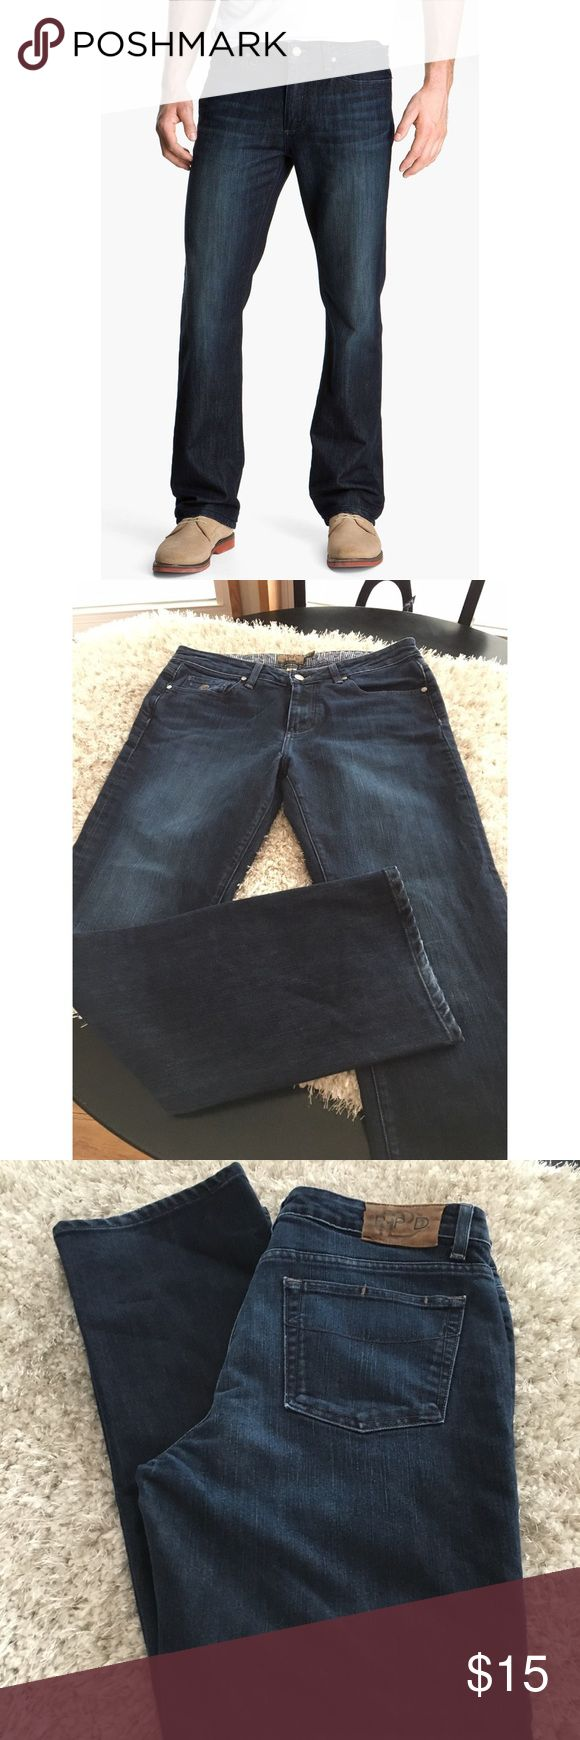 PPD Paige Premium Denim Dohney Straight Jeans Men's jeans.  PPD- Paige Premium Denim.  Dohney Straight style.  Dark blue rinse with slight designer fading.  Size 34x32.  Very light minimal fading at hemline.  Otherwise good condition.  Important:   All items are freshly laundered as applicable prior to shipping (new items and shoes excluded).  Not all my items are from pet/smoke free homes.  Price is reduced to reflect this!   Thank you for looking! PAIGE Jeans Straight